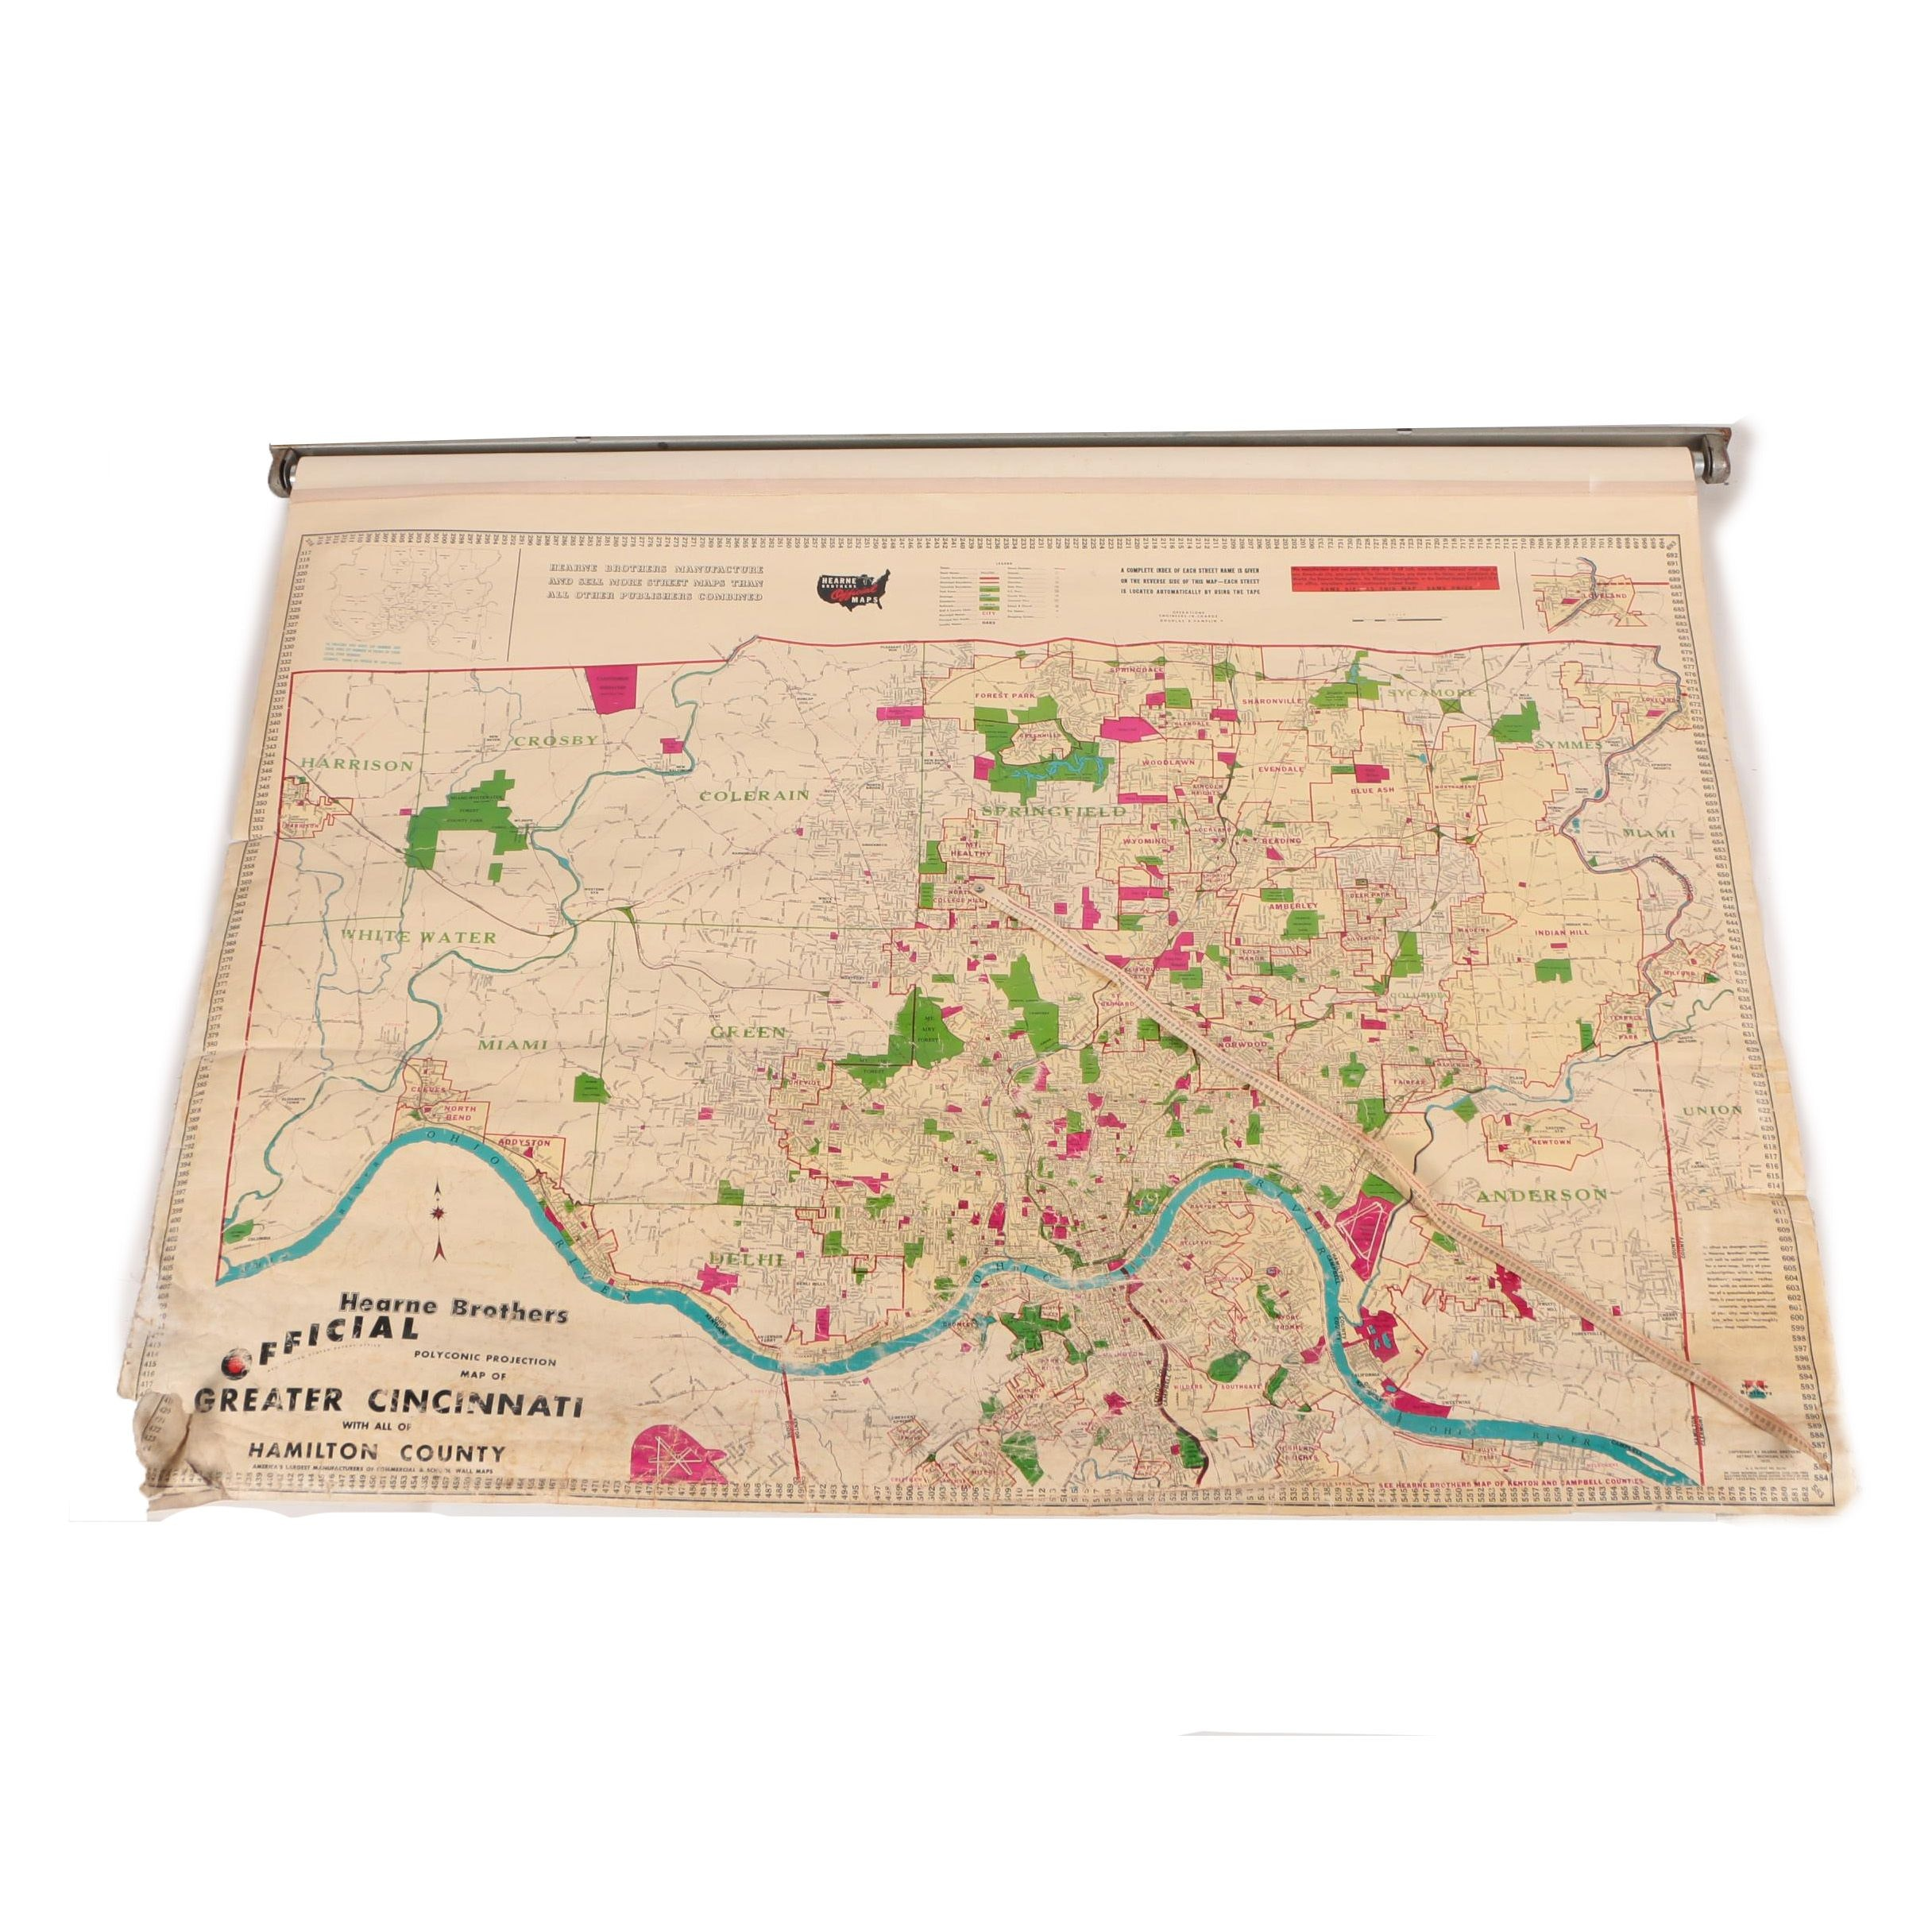 Hearne Brothers Official Map of Greater Cincinnati and Hamilton County